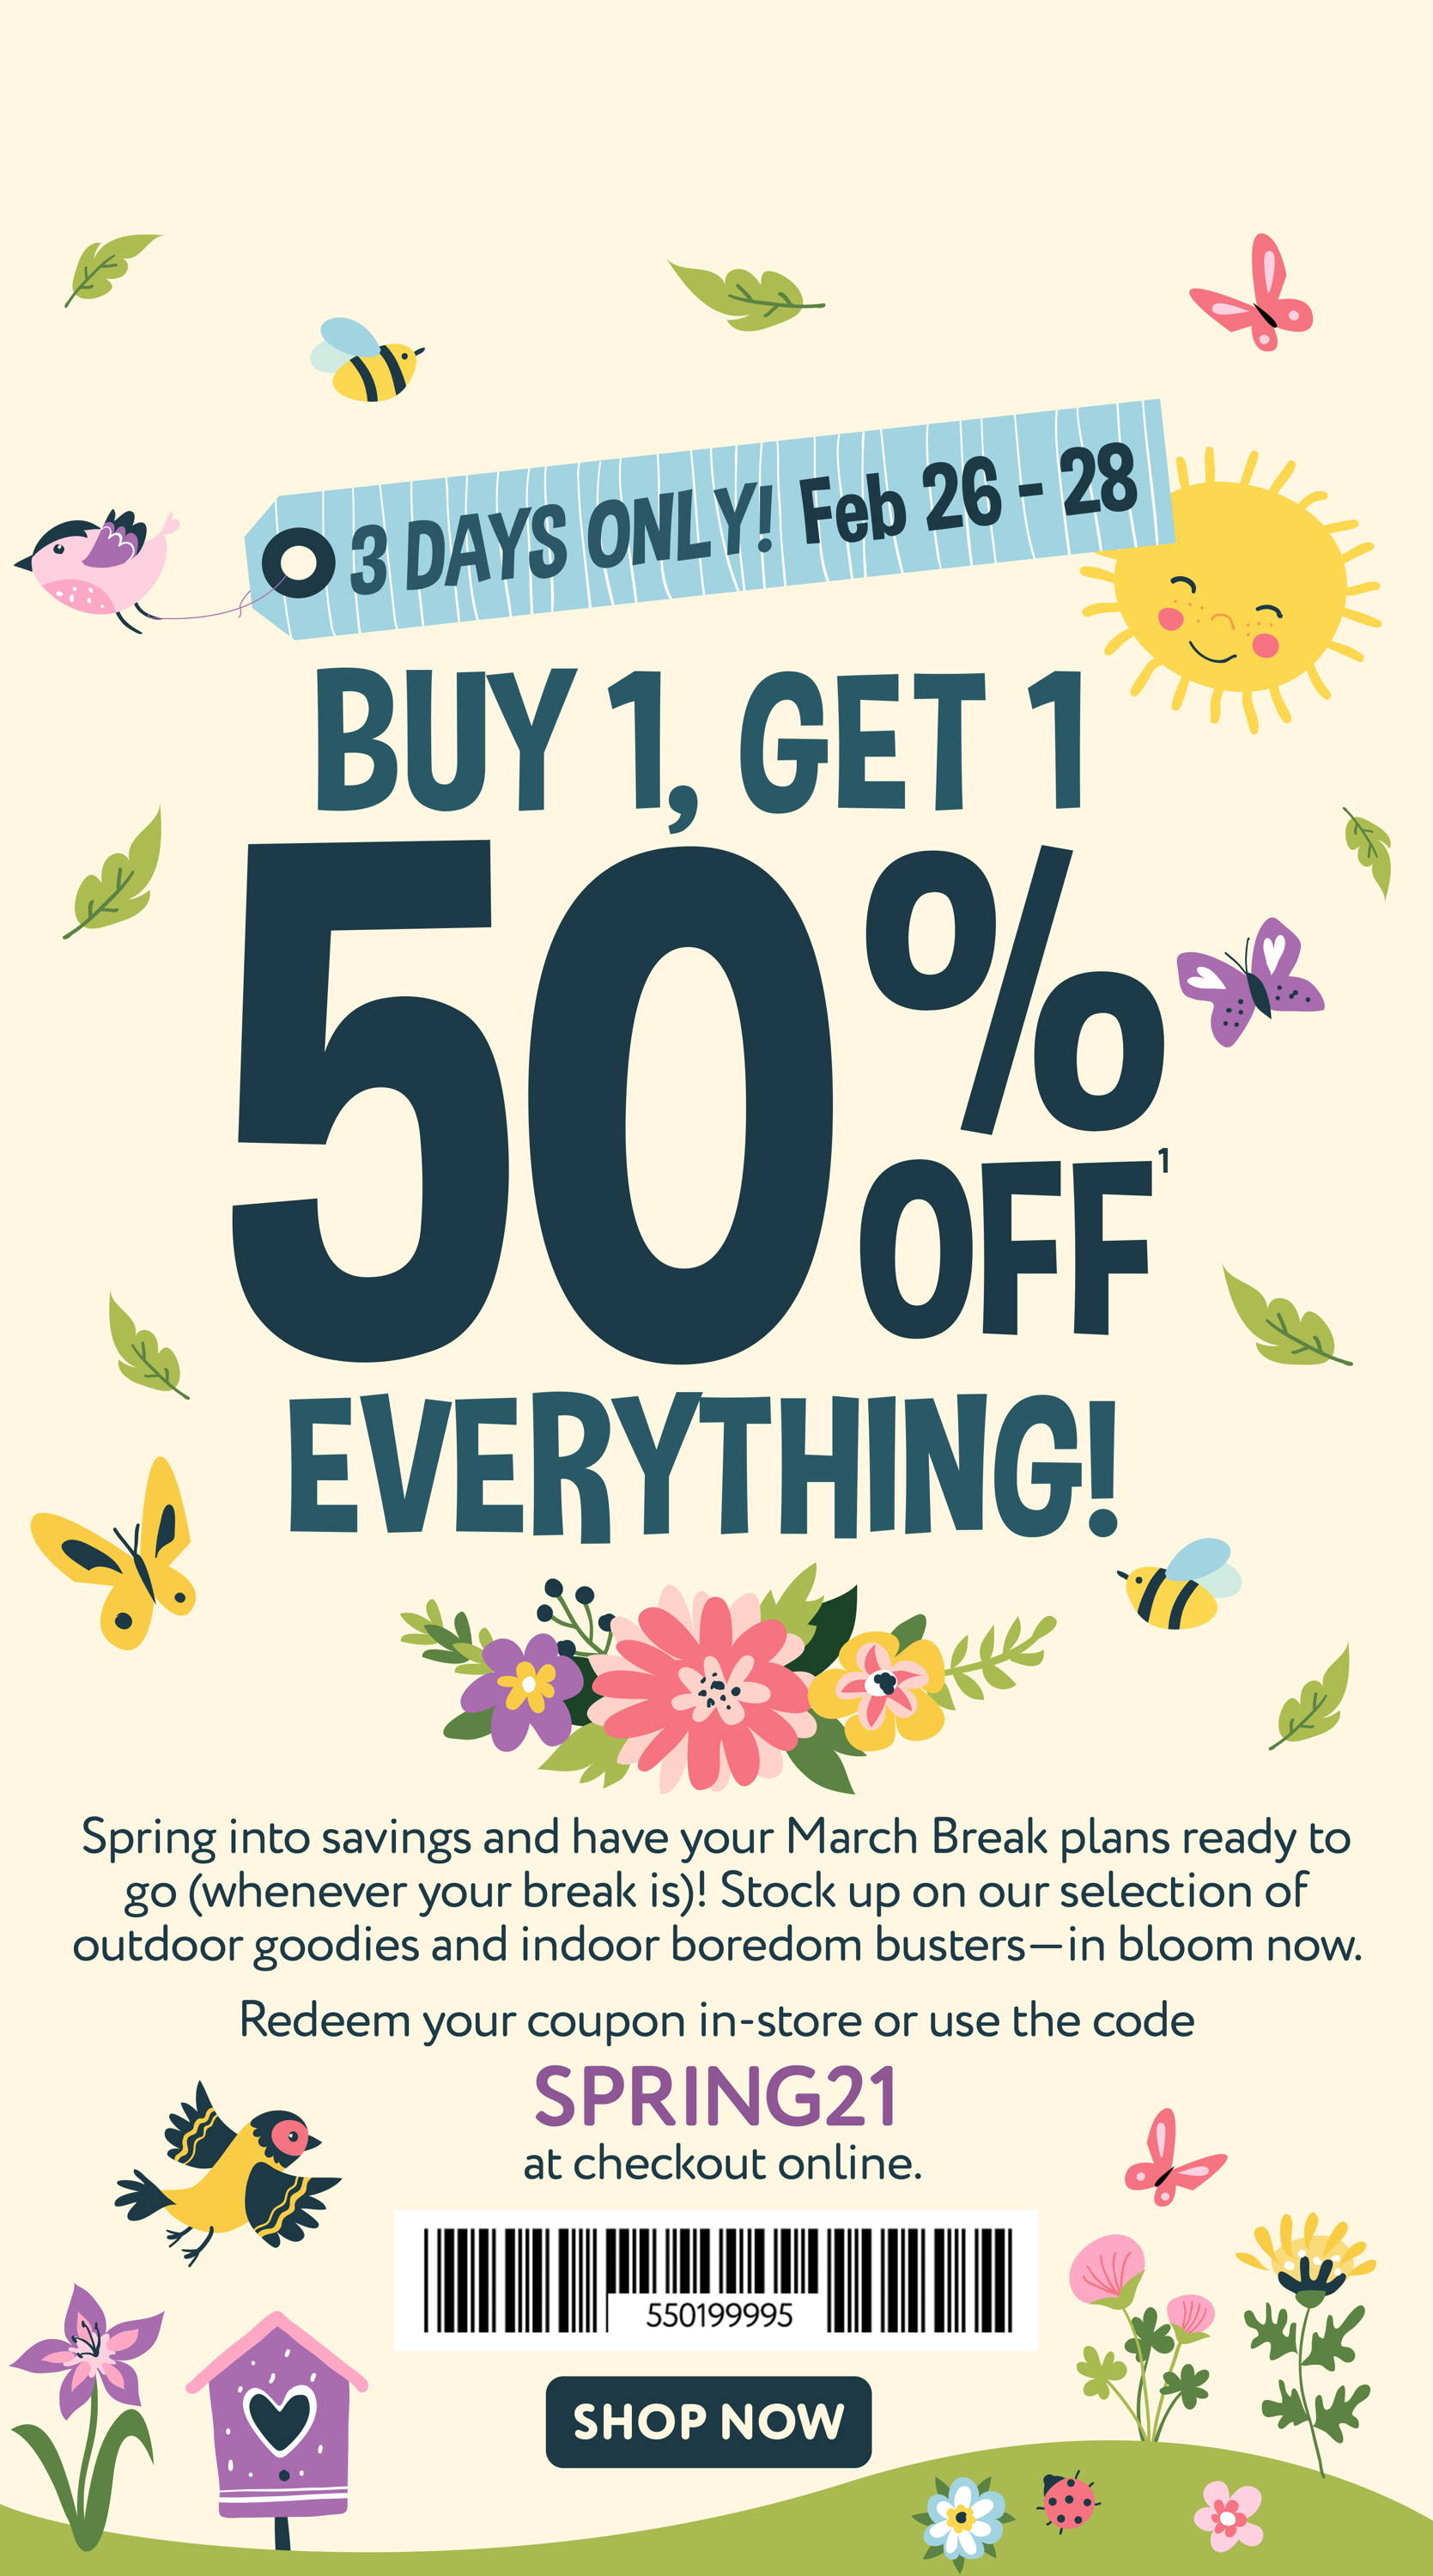 Buy 1, Get 1 50% off Everything! 3 Days Only, Feb 26-28